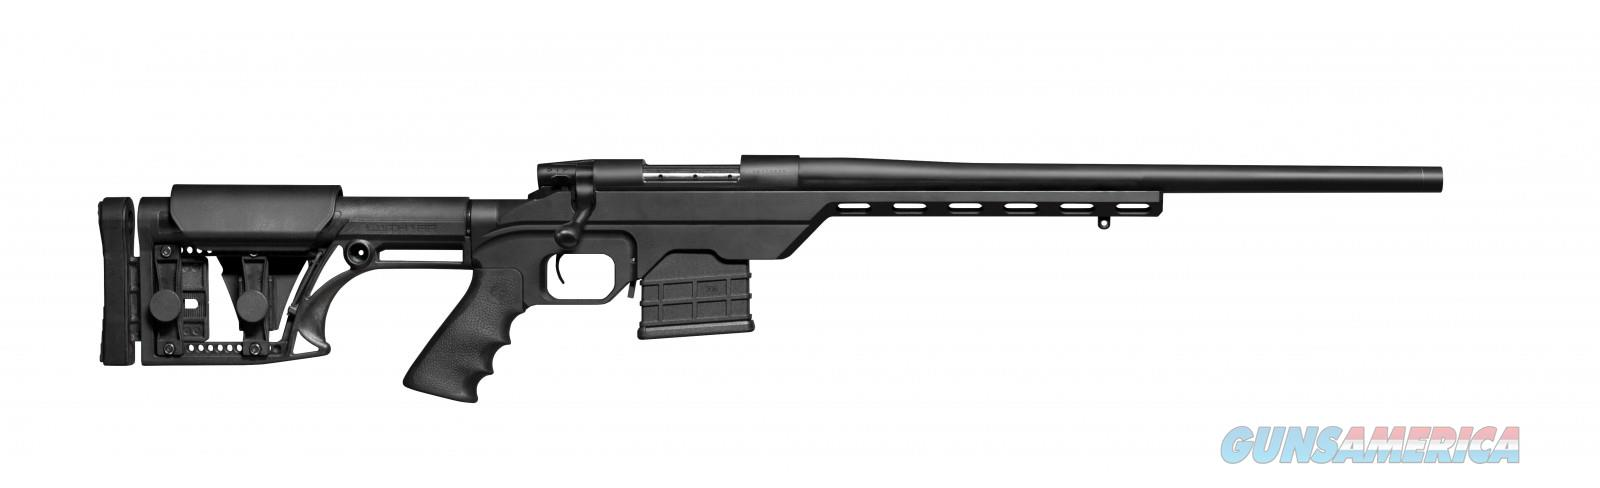 "Weatherby Vanguard Modular Chassis .223 Rem 20"" VLR223RR0T   Guns > Rifles > Weatherby Rifles > Tactical"